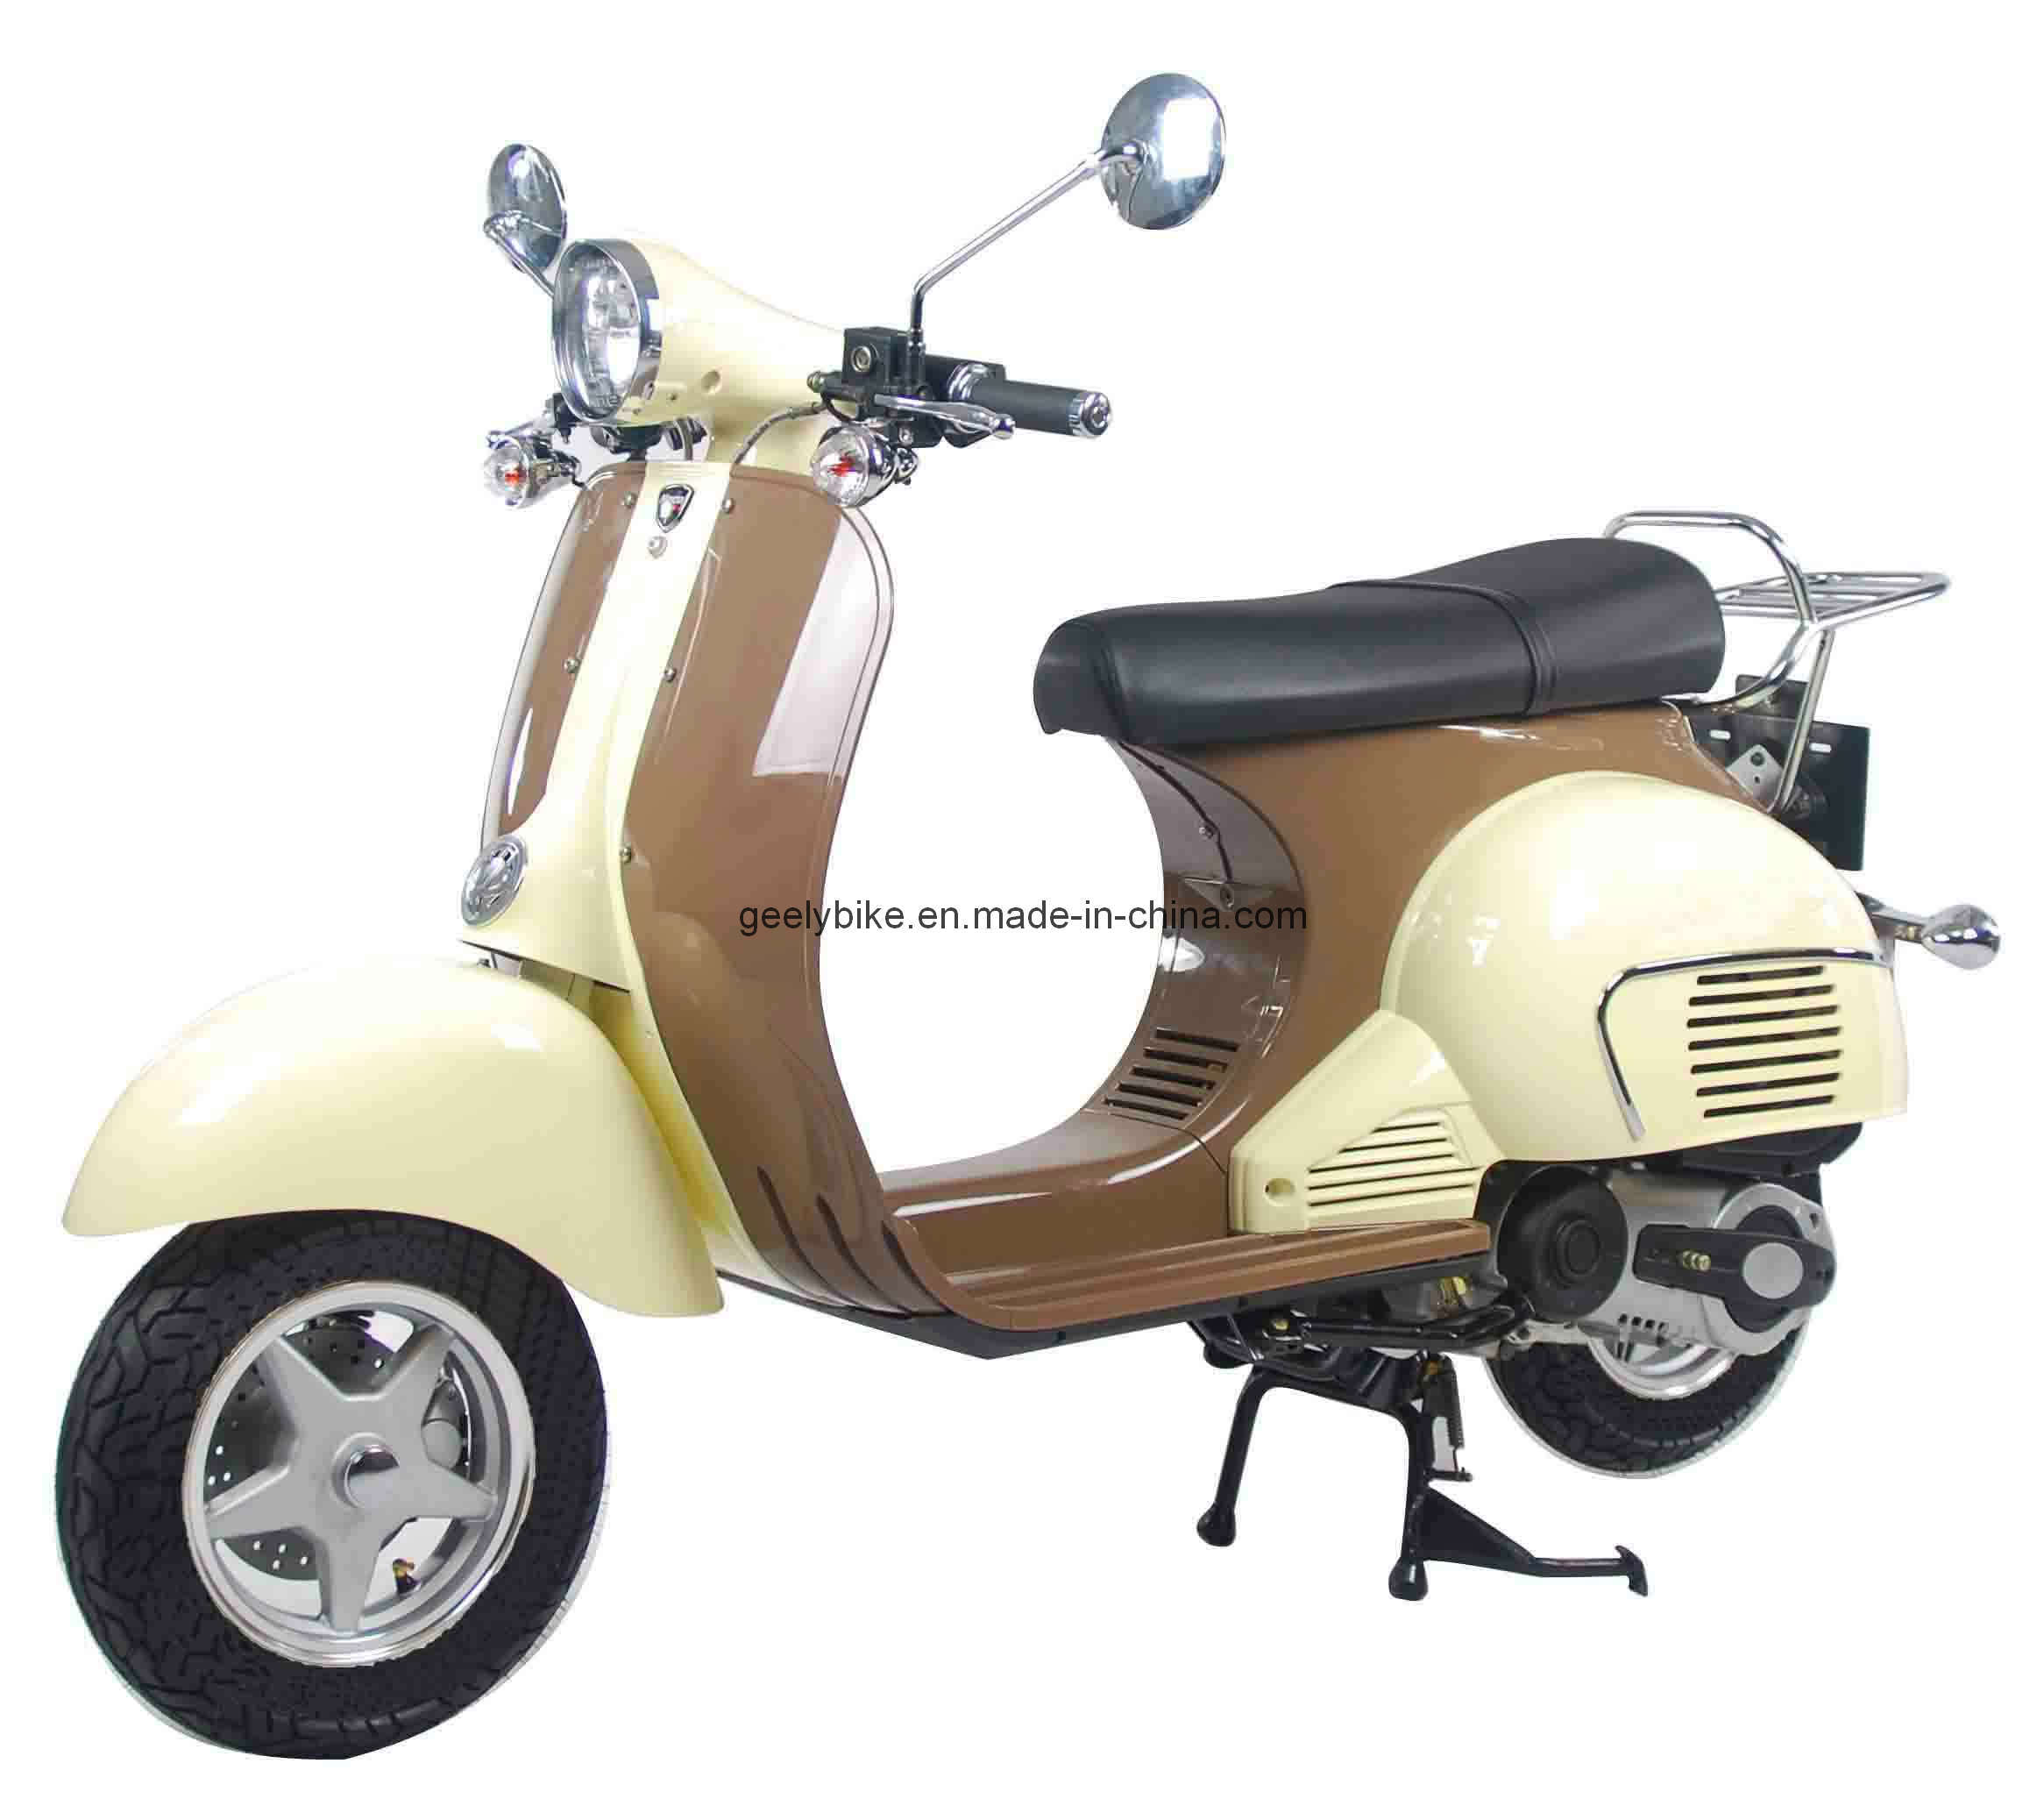 50cc Vespa Vintage Scooter DOT/EPA Approved